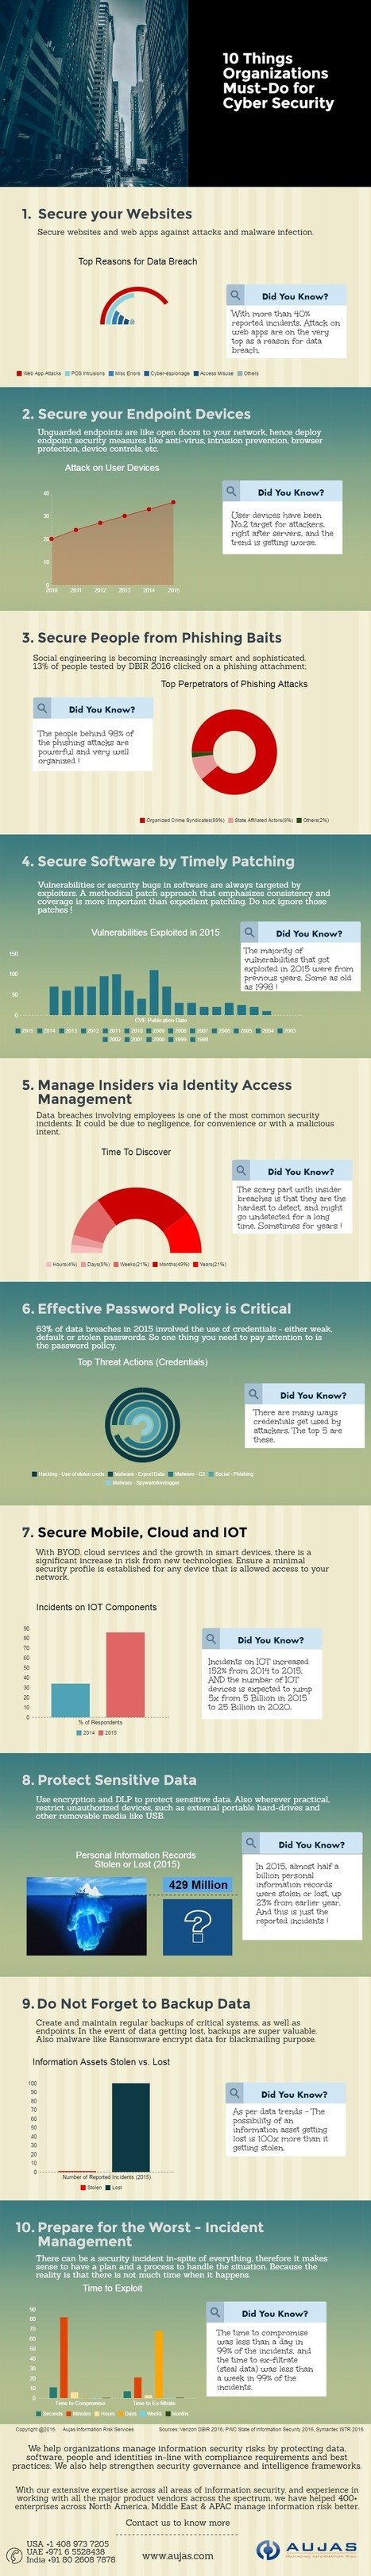 10 Basic Things Every Organization MUST-DO for Cybersecurity   Cybercrime & Privacy   Scoop.it